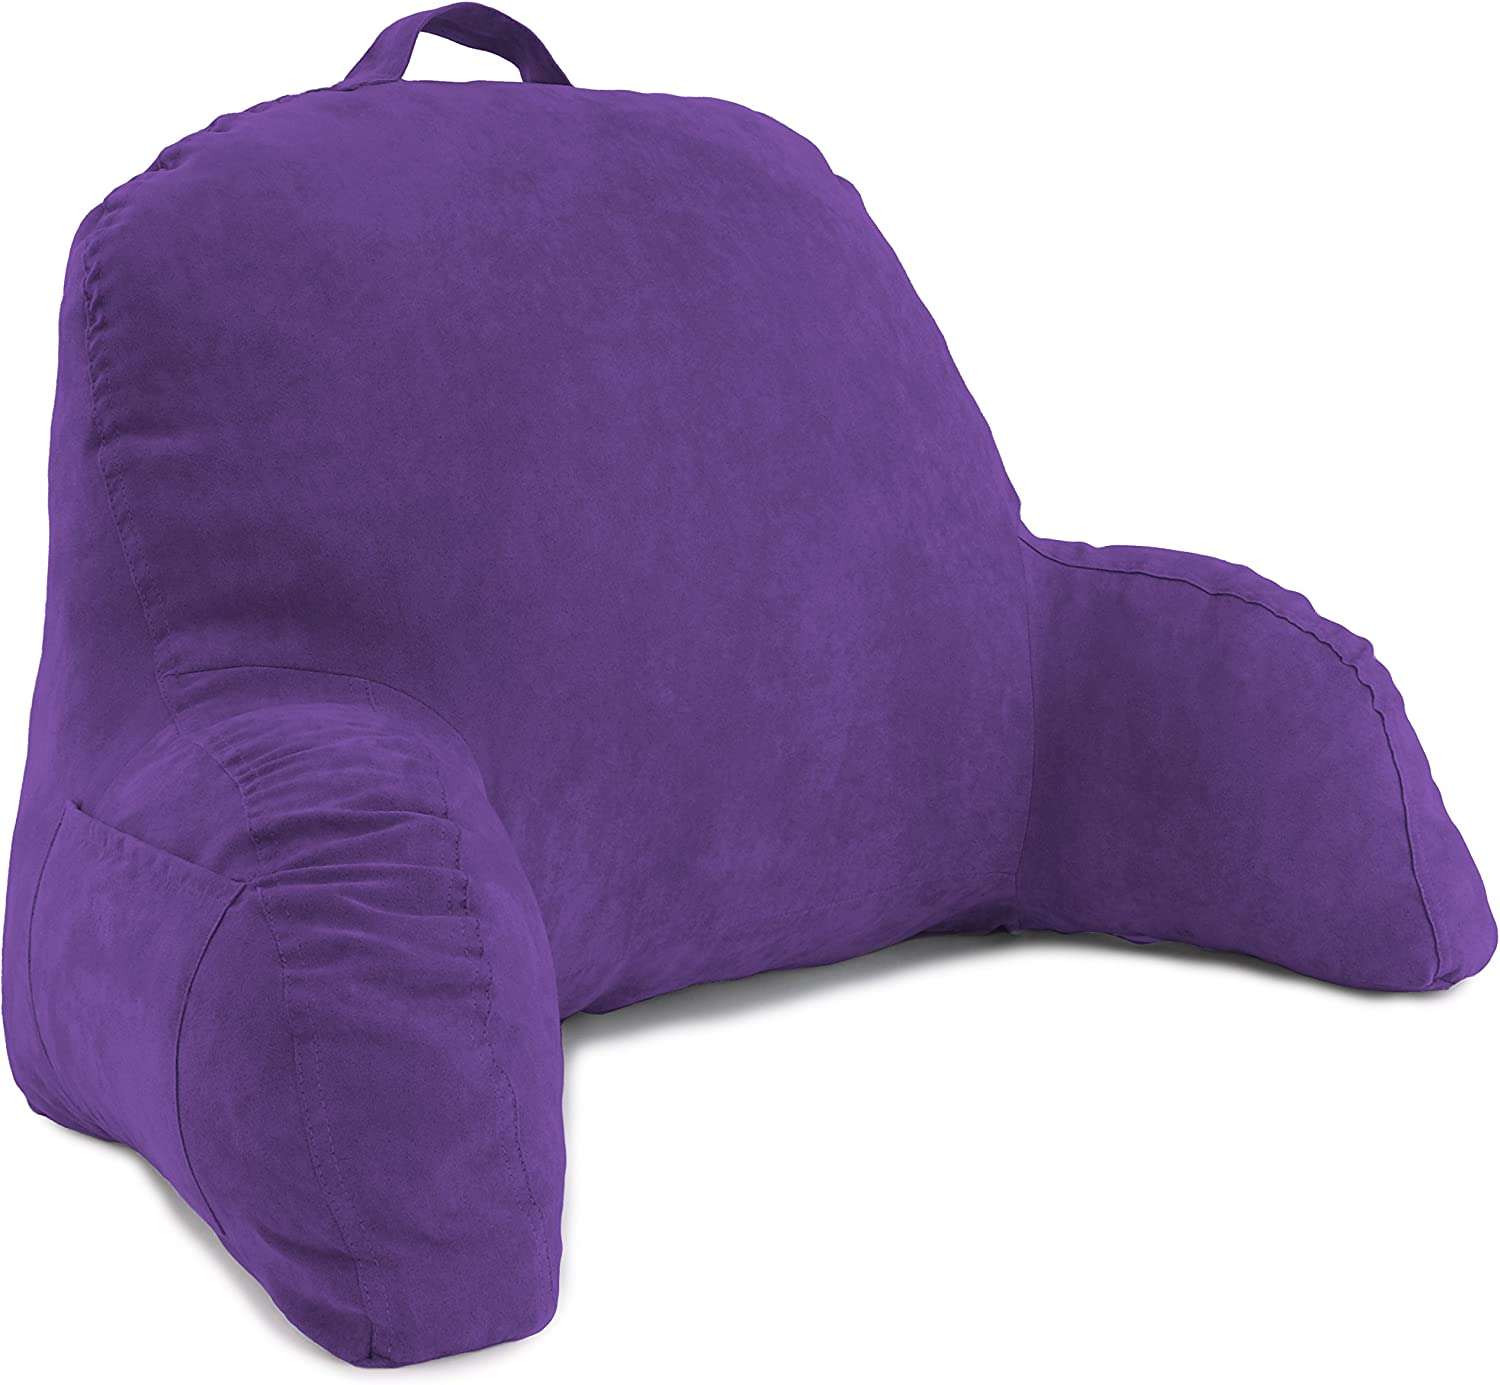 Deluxe Comfort Microsuede Bed Reading & Bed Rest Pillows, One Size, Light Purple: Home & Kitchen